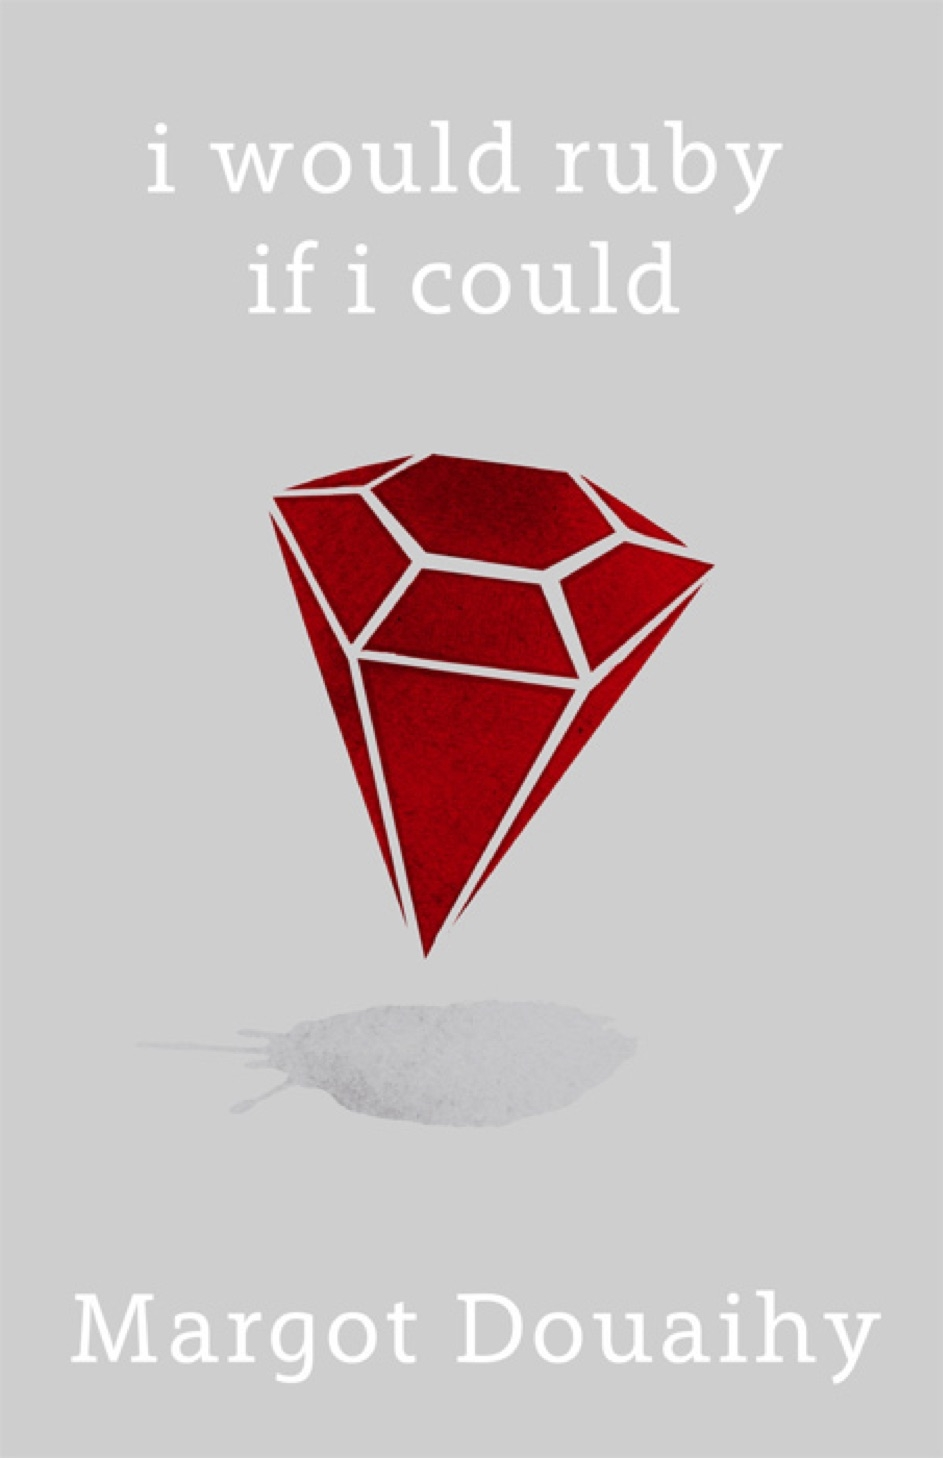 Margot-Douaihy-i-would-ruby-if-i-could.jpg